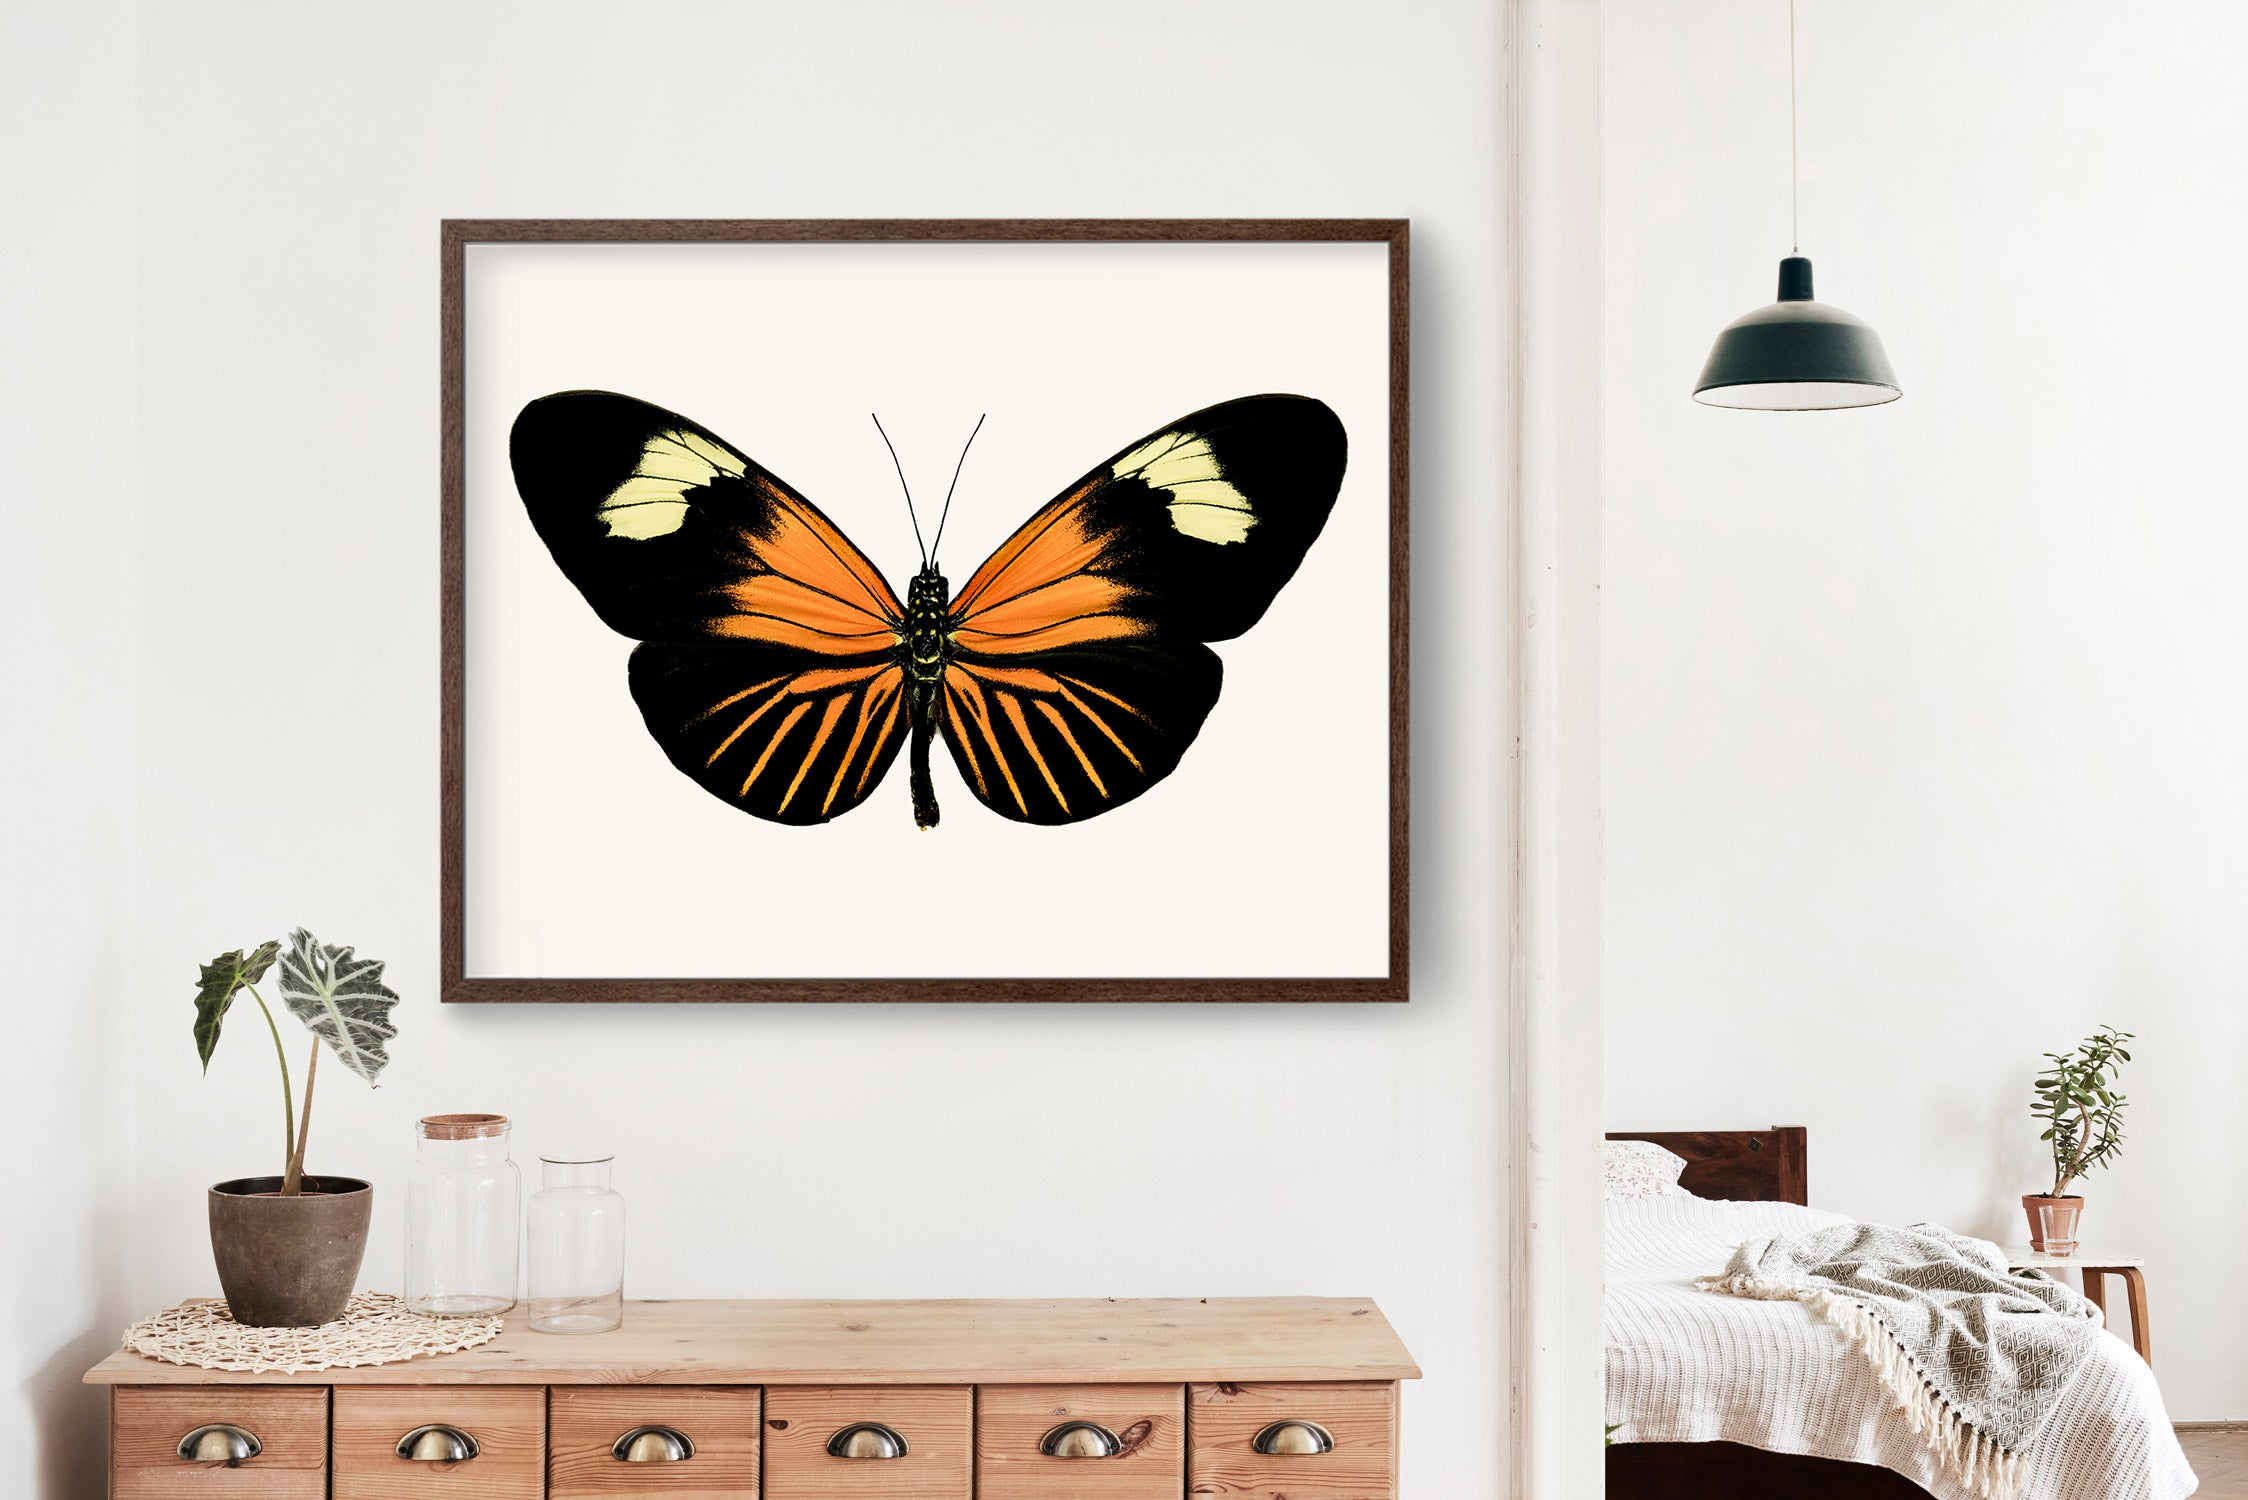 Butterfly No. 13 - the Longwing Butterfly